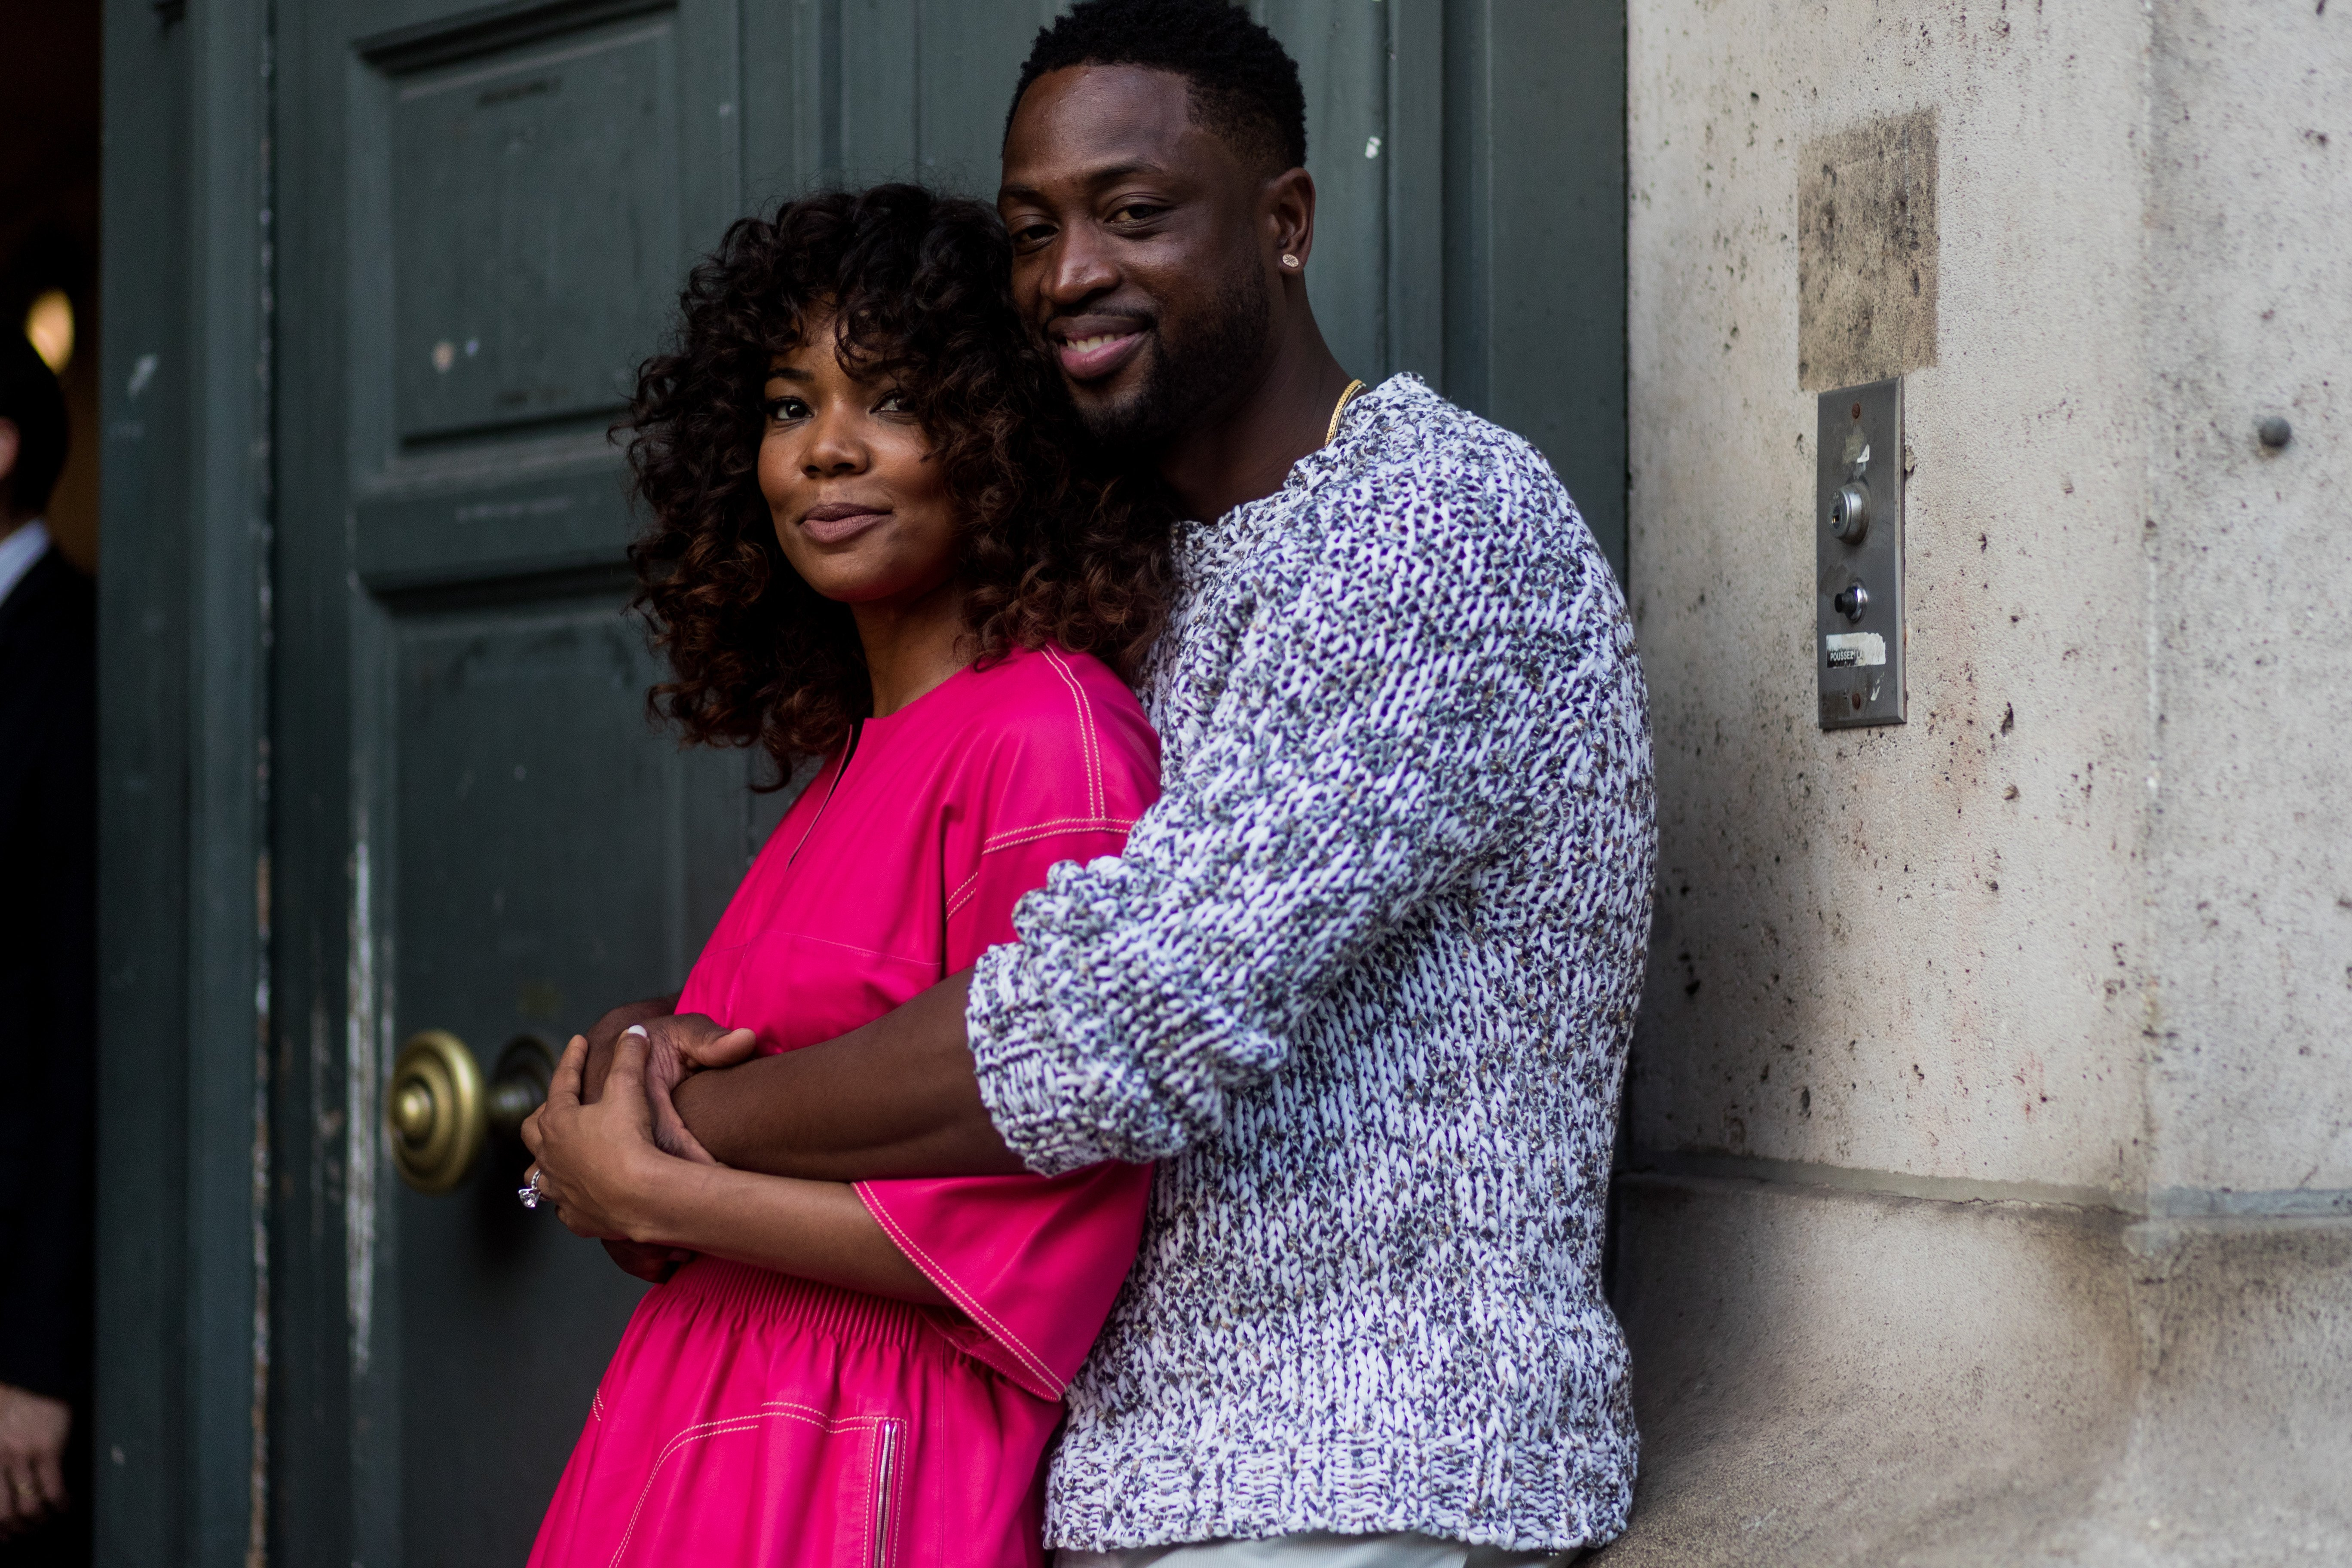 Gabrielle Union & Dwyane Wade hugging outside Hermes during Paris Fashion Week on June 24, 2017 in France | Photo: Getty Images